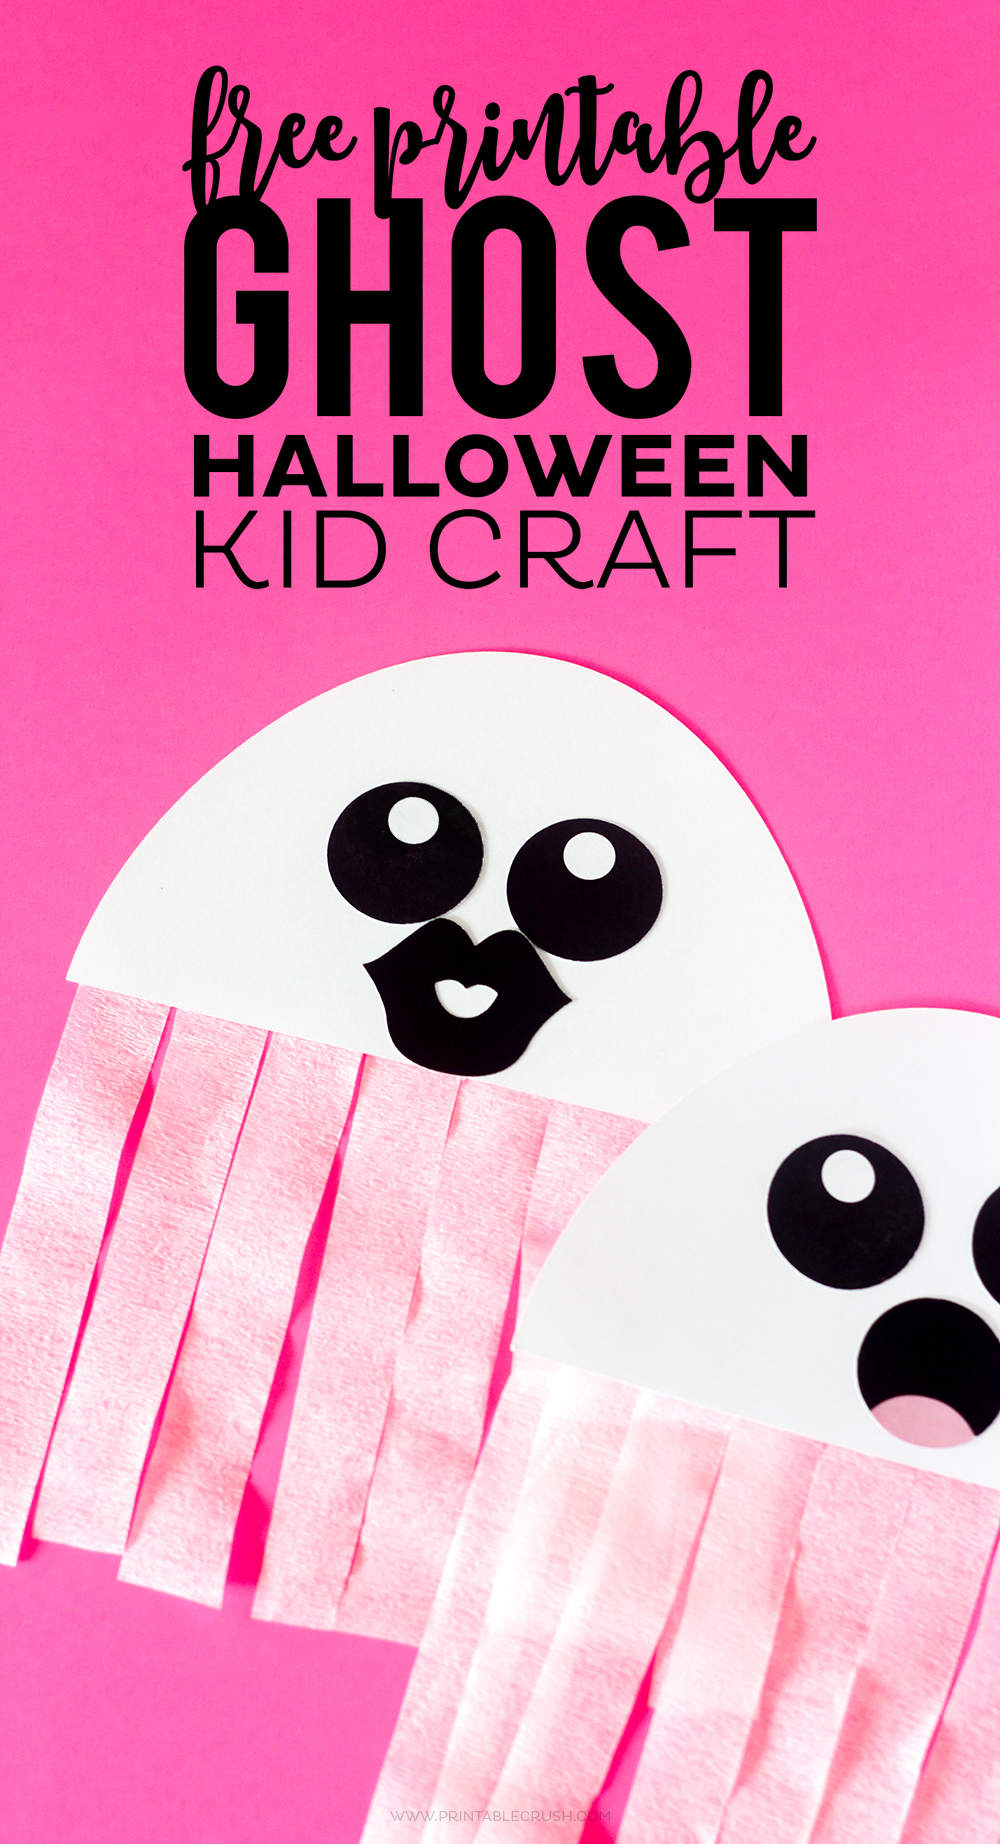 decoration crafts ideas free printable ghost craft printable crush 1844